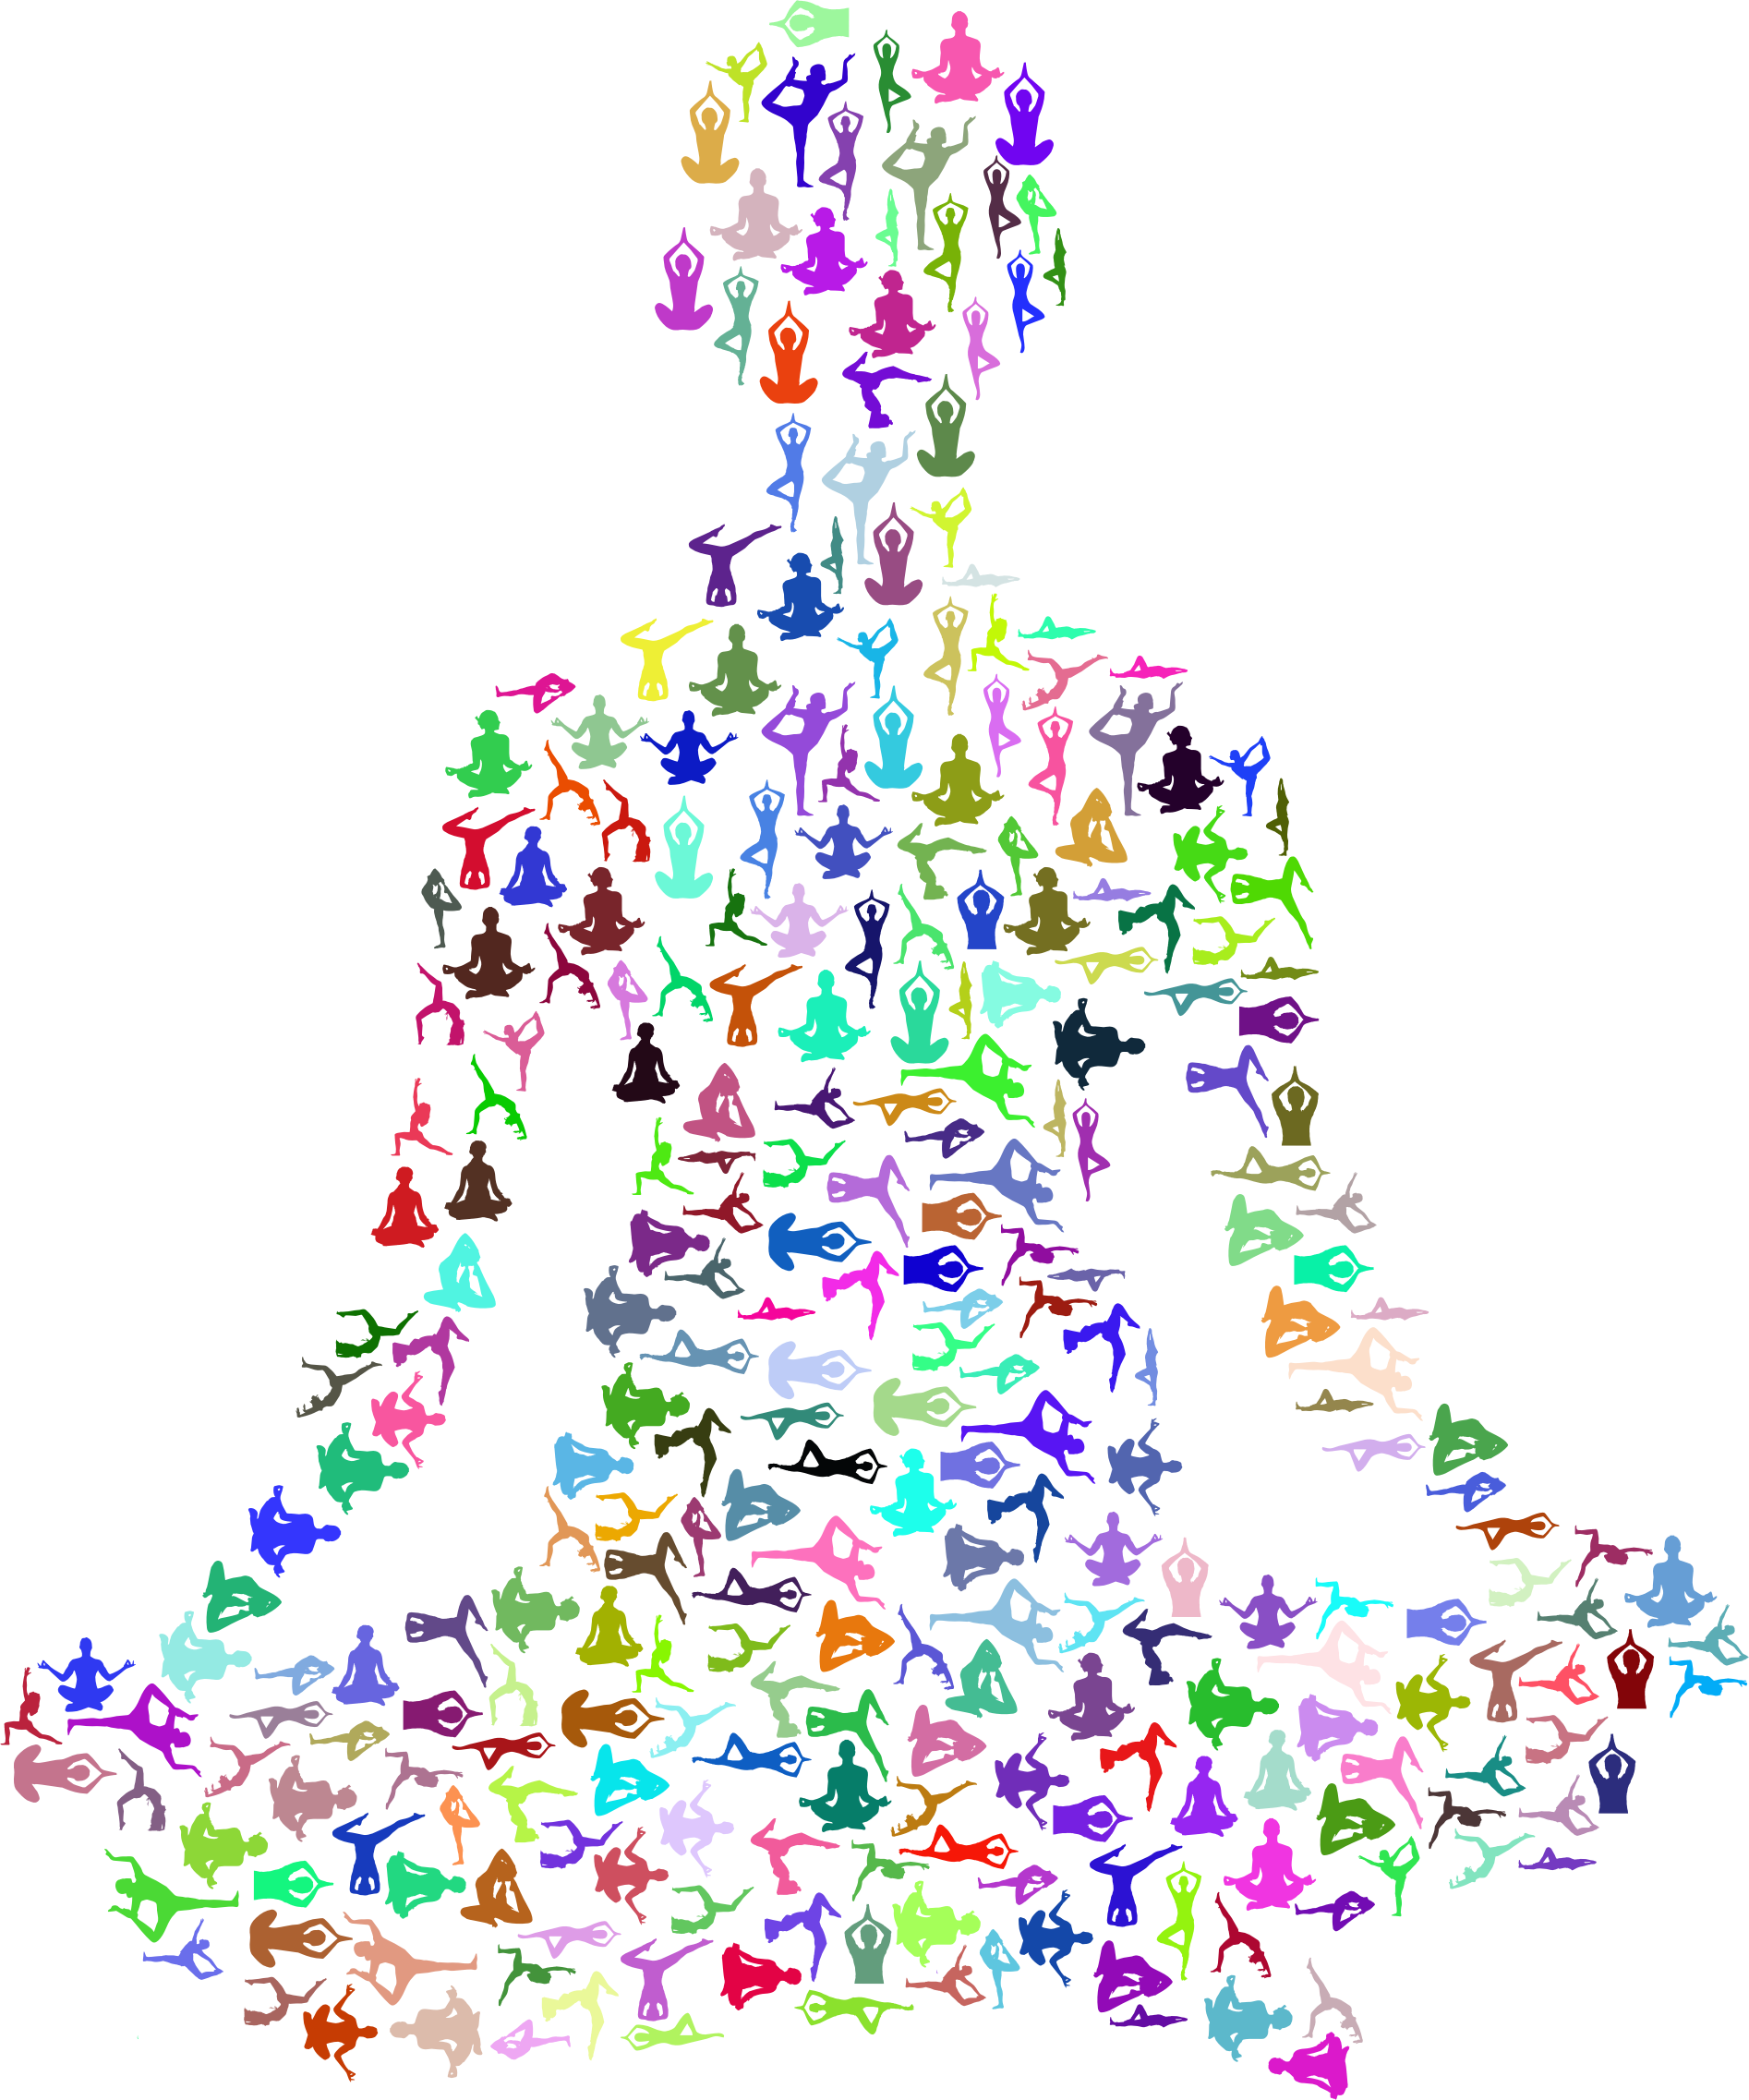 Prismatic Female Yoga Pose Silhouette Fractal No Background by GDJ